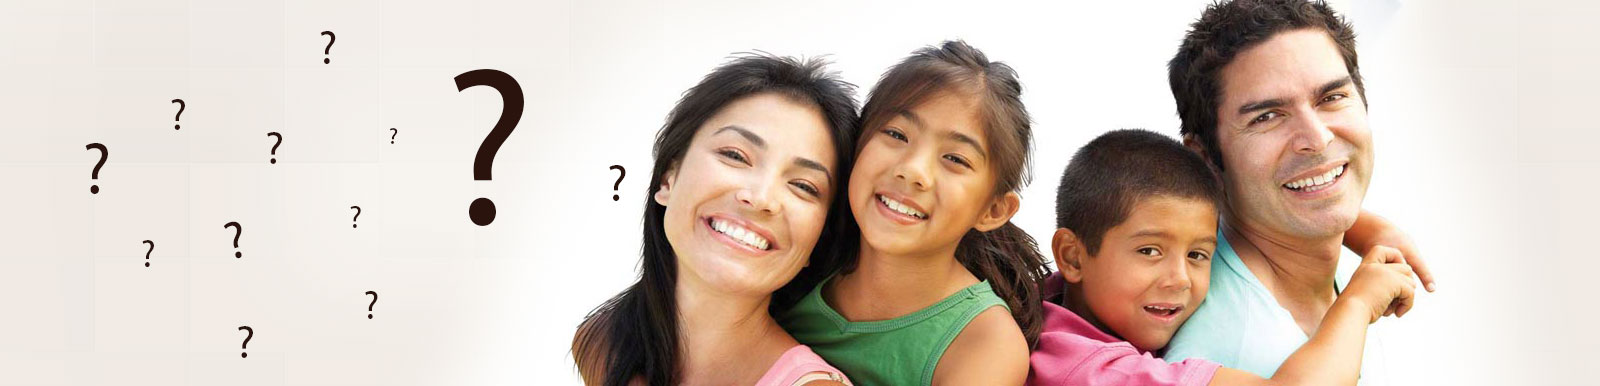 Orthodontic Question and Answers